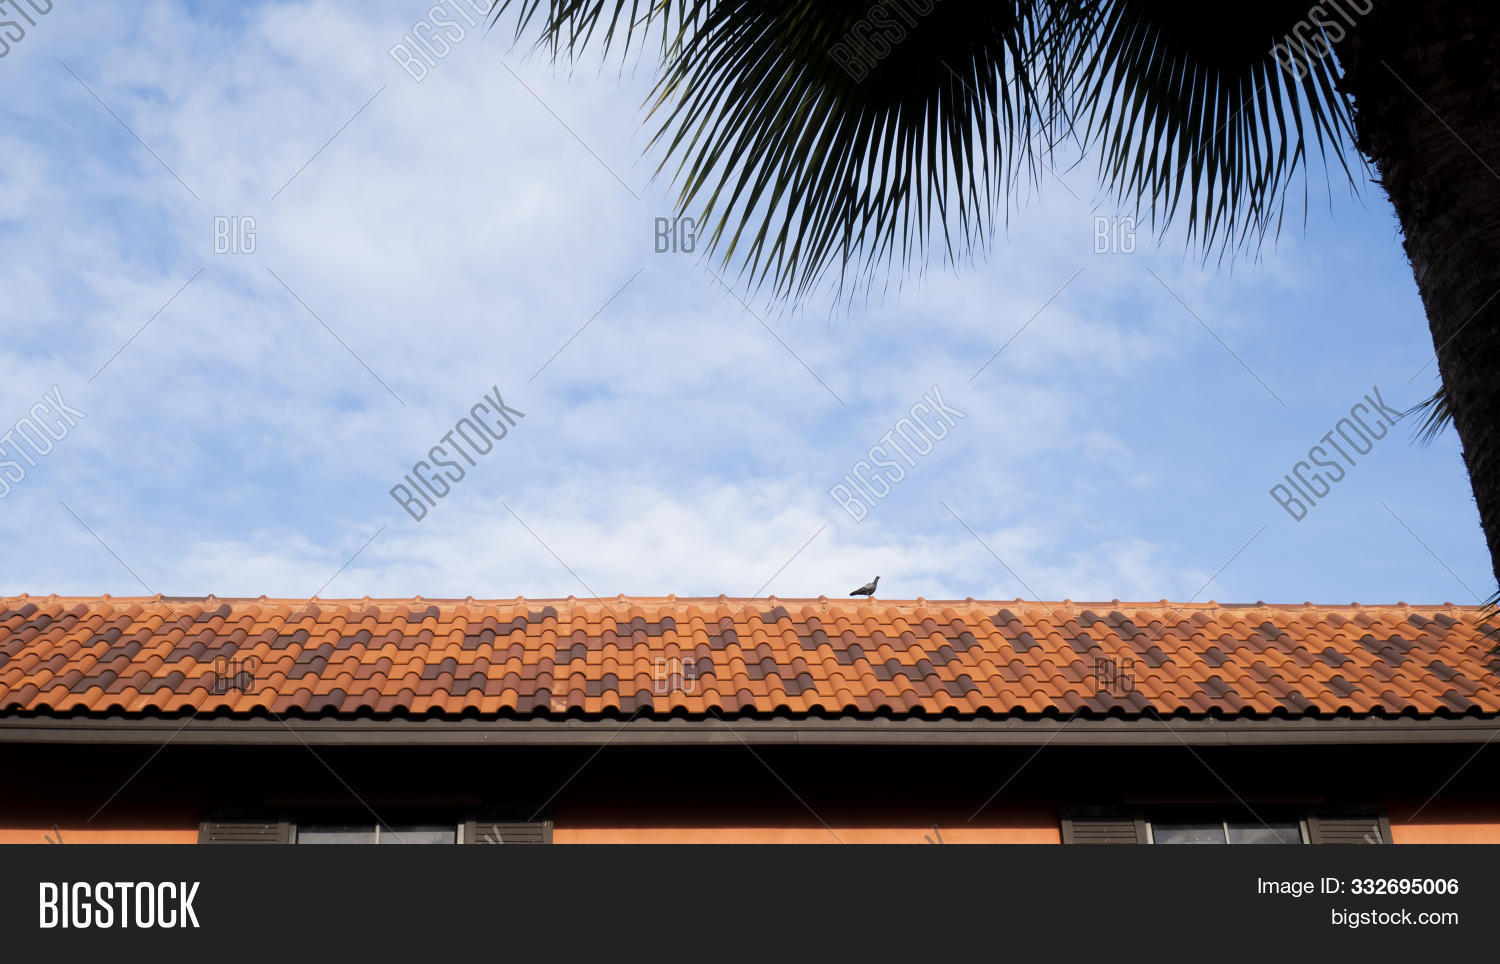 ancient,architecture,background,bird,blue,building,ceramic,clay,construction,dalmatia,design,detail,dubrovnik,europe,exterior,famous,historic,history,holiday,home,house,landmark,landscape,material,medieval,mediterranean,old,pattern,protection,red,residential,roof,roofing,rooftop,sky,skyline,stone,structure,style,summer,texture,tile,top,tourism,travel,urban,vacation,wall